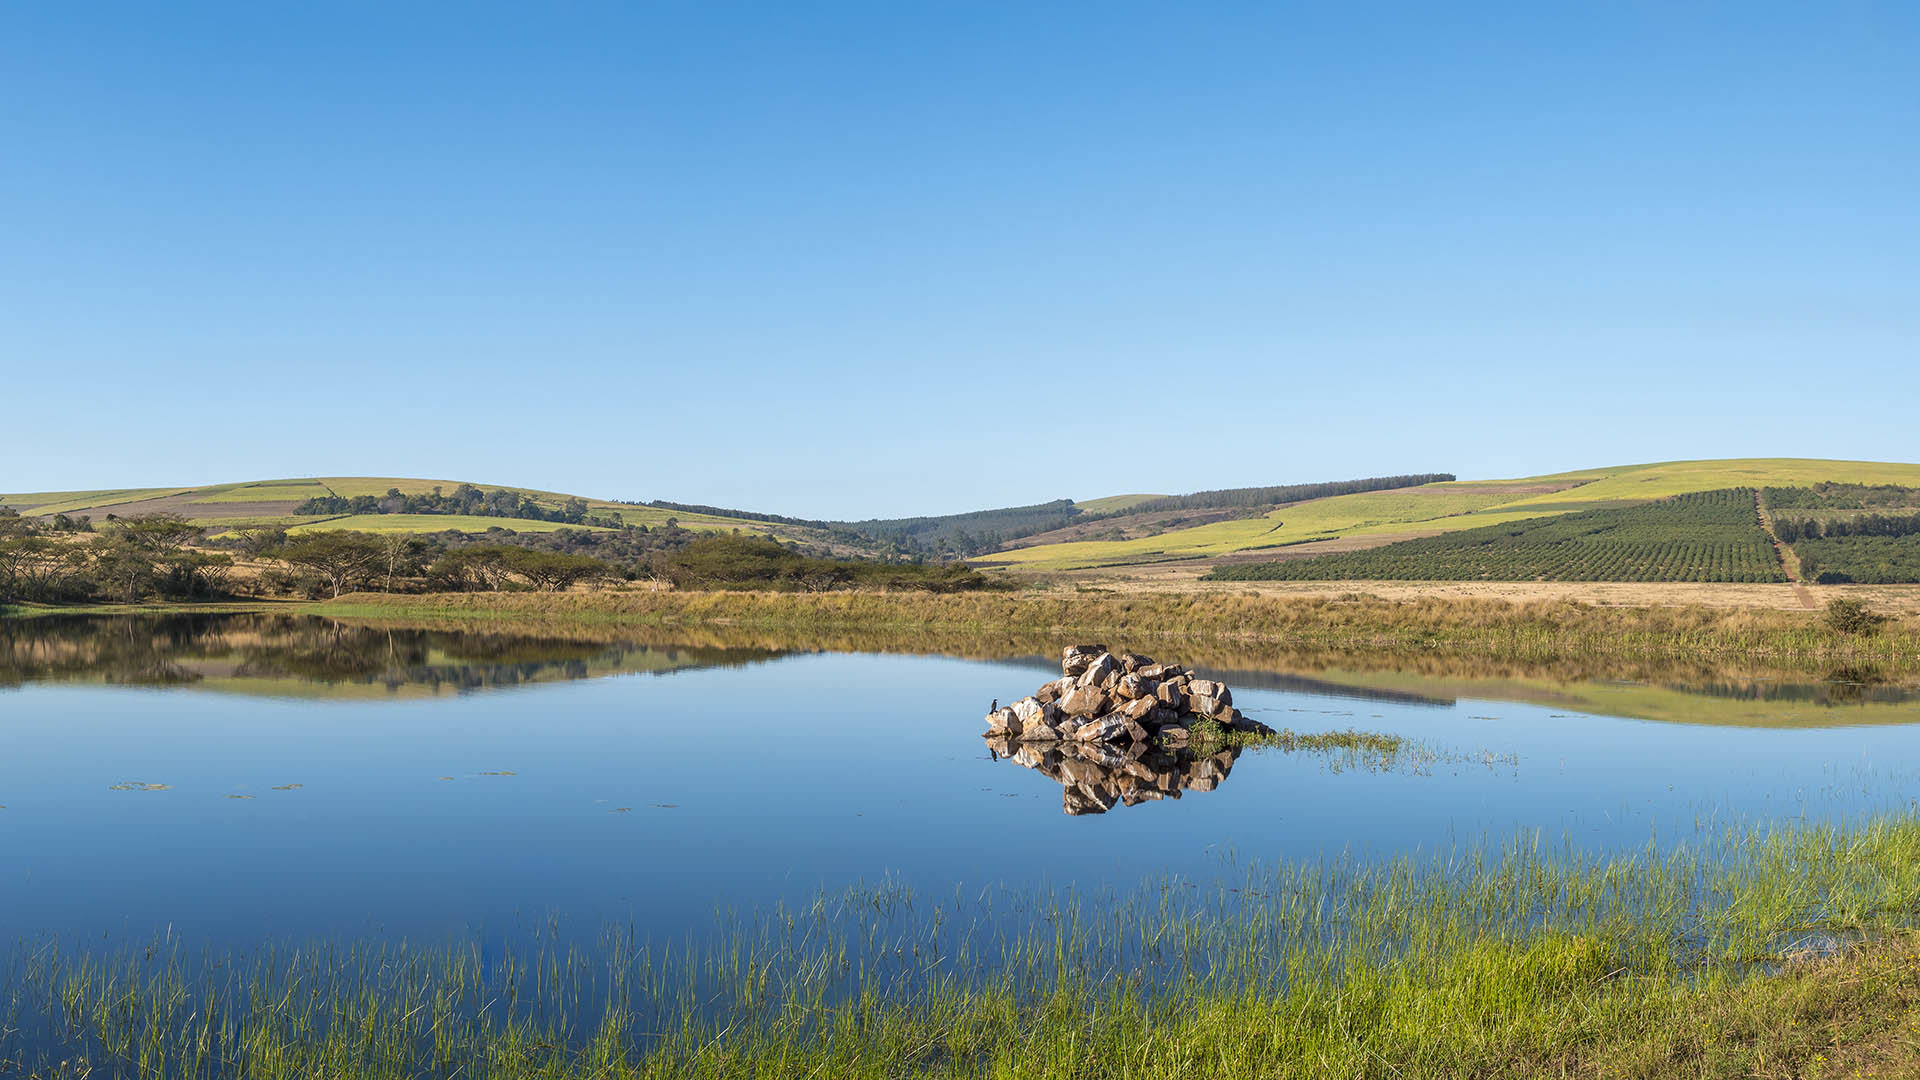 fountain hill reserve umgeni-river-farming-community-accommodation-conservation-wartburg-kwazulu-natal